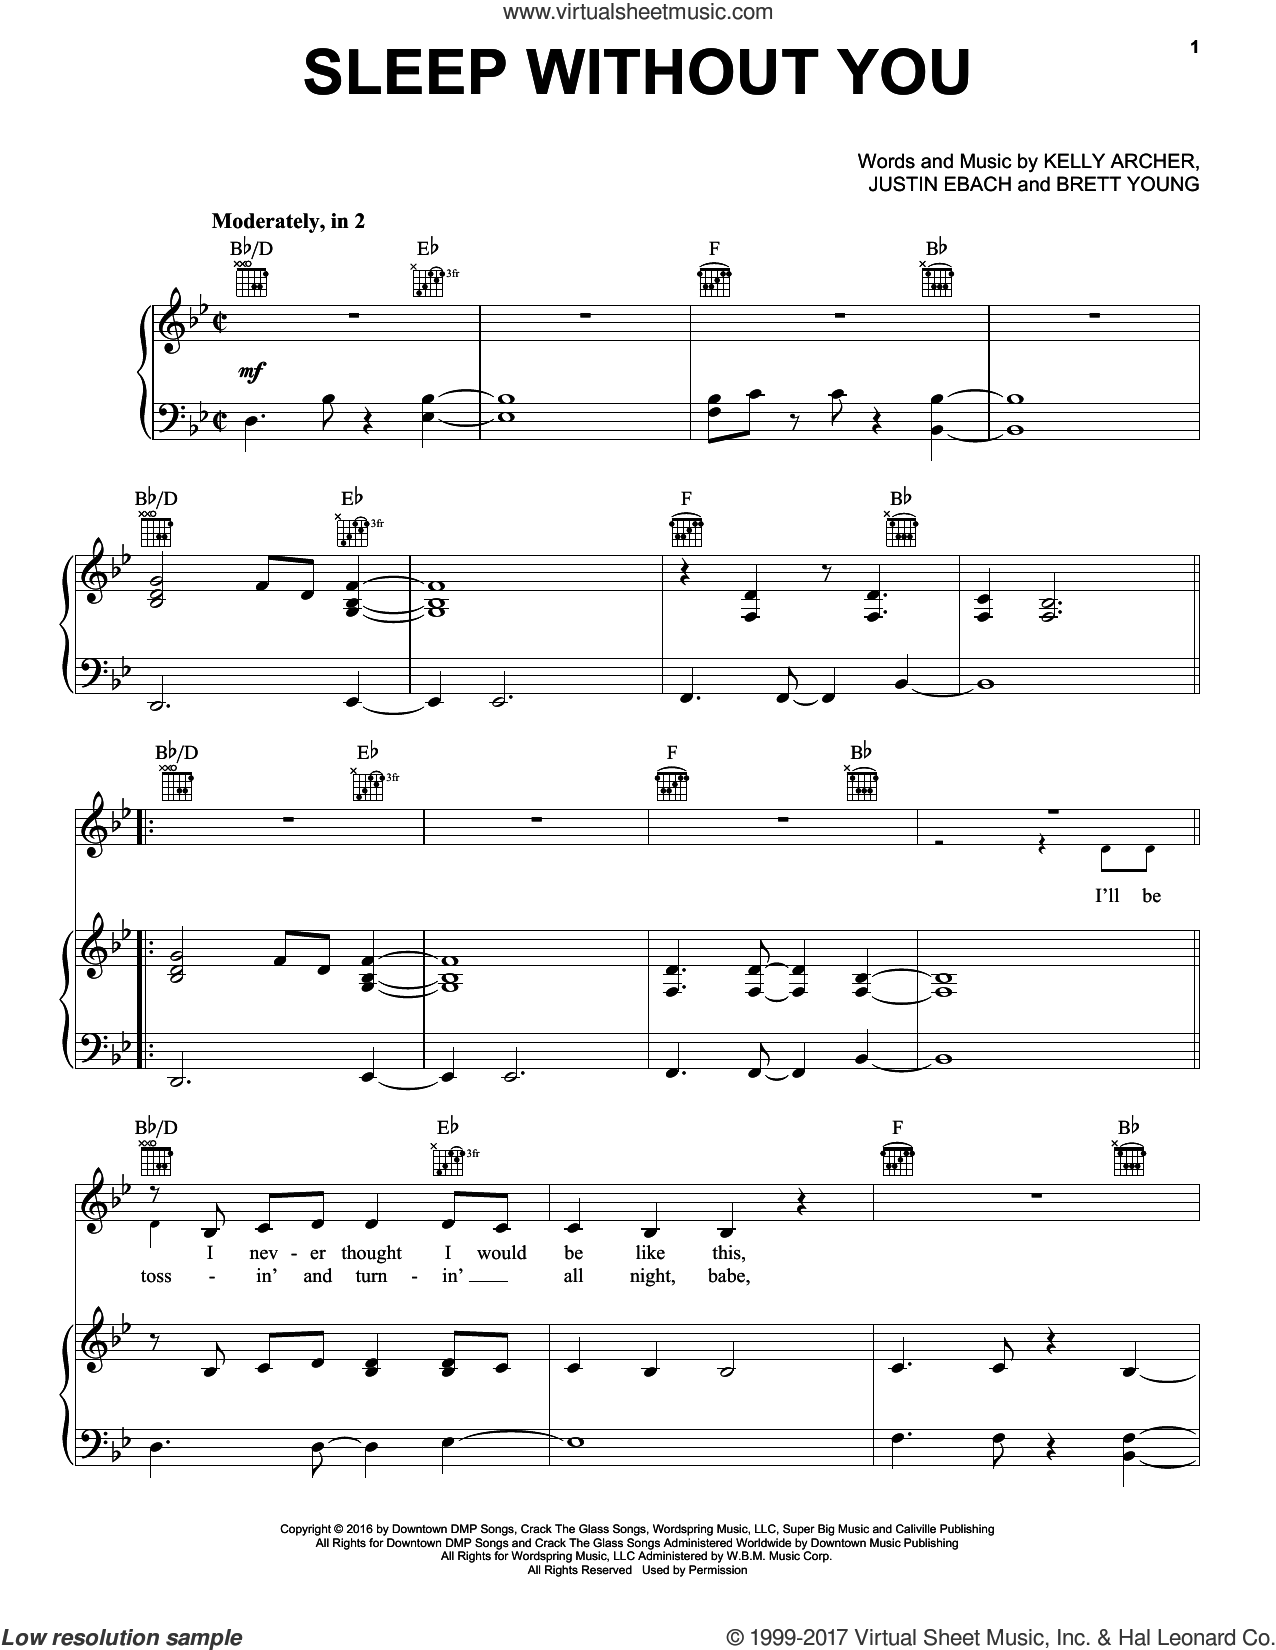 Sleep Without You sheet music for voice, piano or guitar by Brett Young, Justin Ebach and Kelly Archer, intermediate skill level